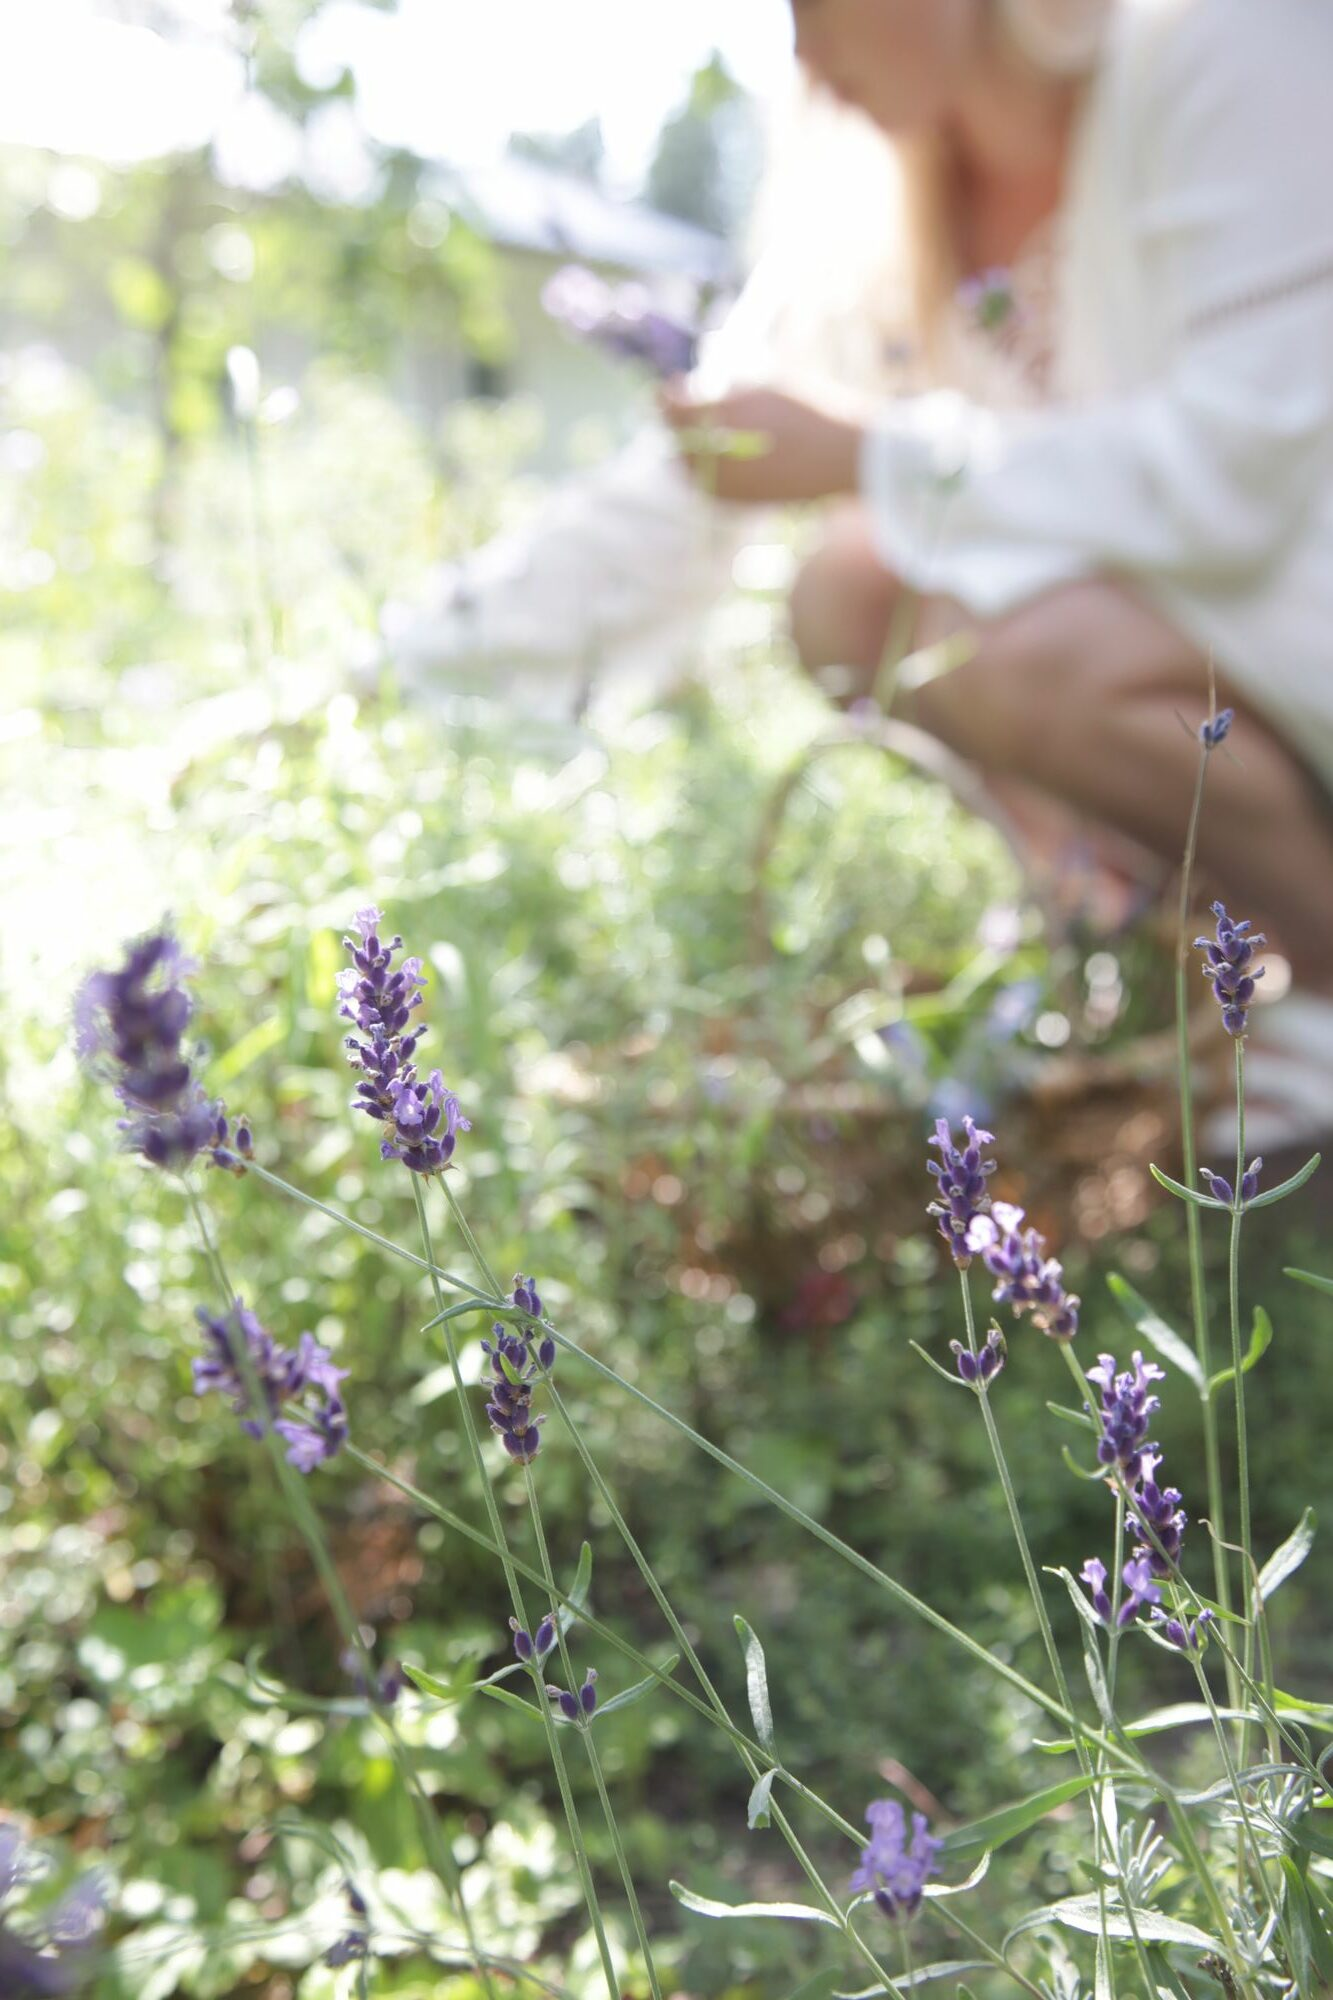 Edible flowers can also bring fragrance when they come.  Lavender blooms can be made into, for example, a charmingly fragrant tea.